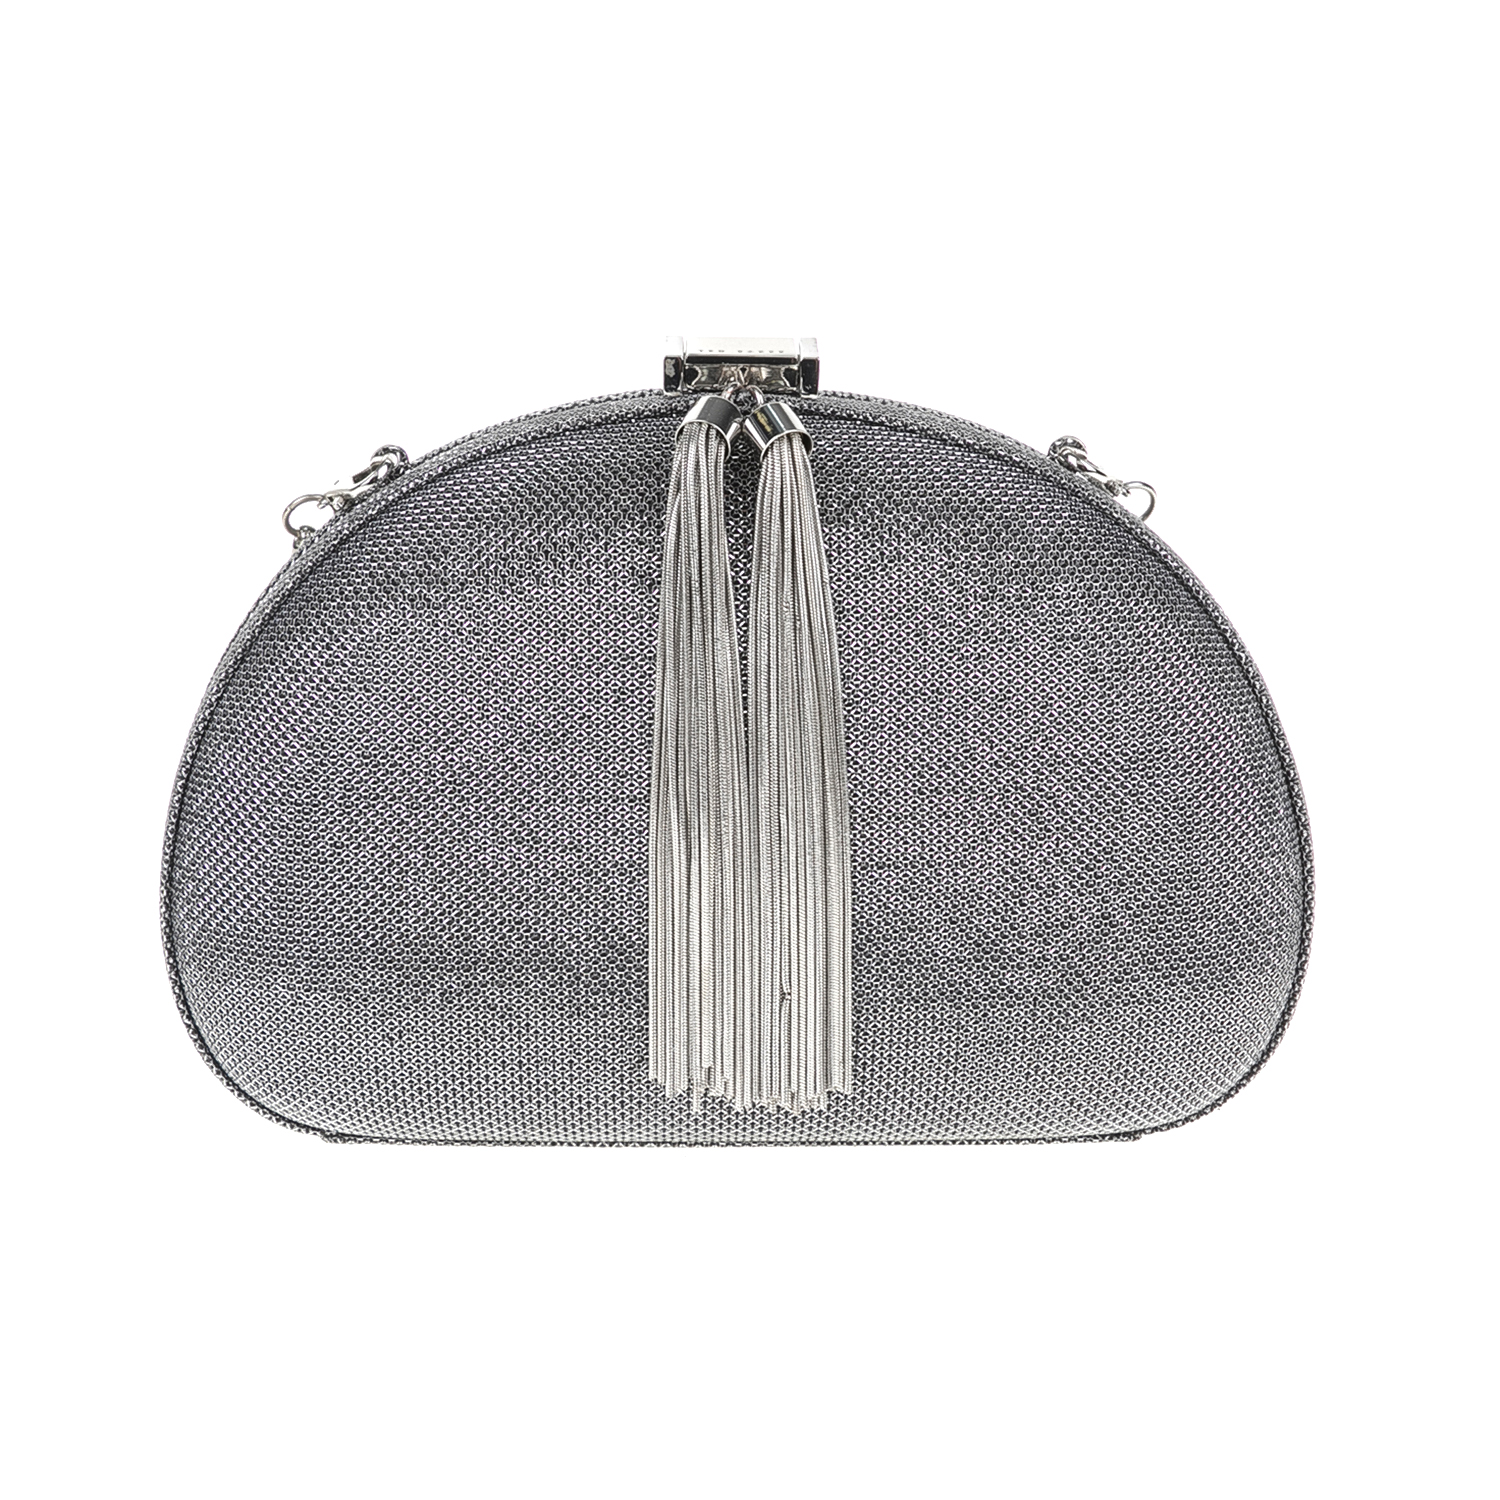 TED BAKER – Γυναικείο clutch DOVEY TED BAKER ασημί